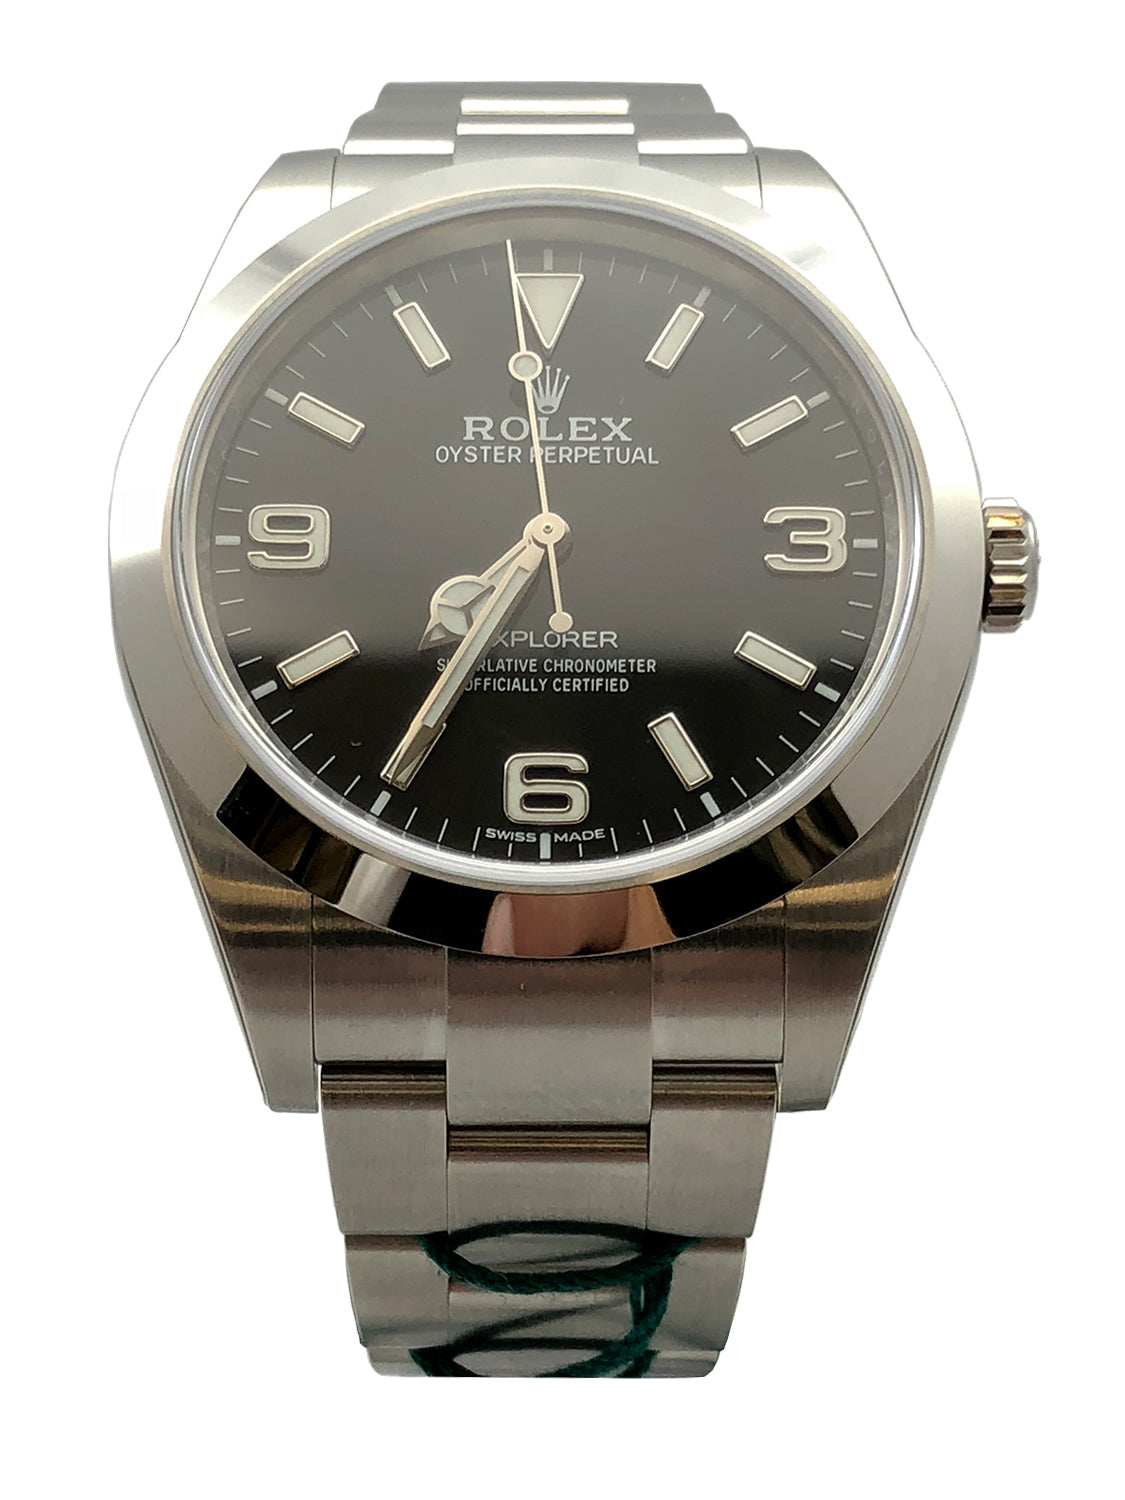 Rolex Explorer Stainless Steel w/Black Dial - 214270